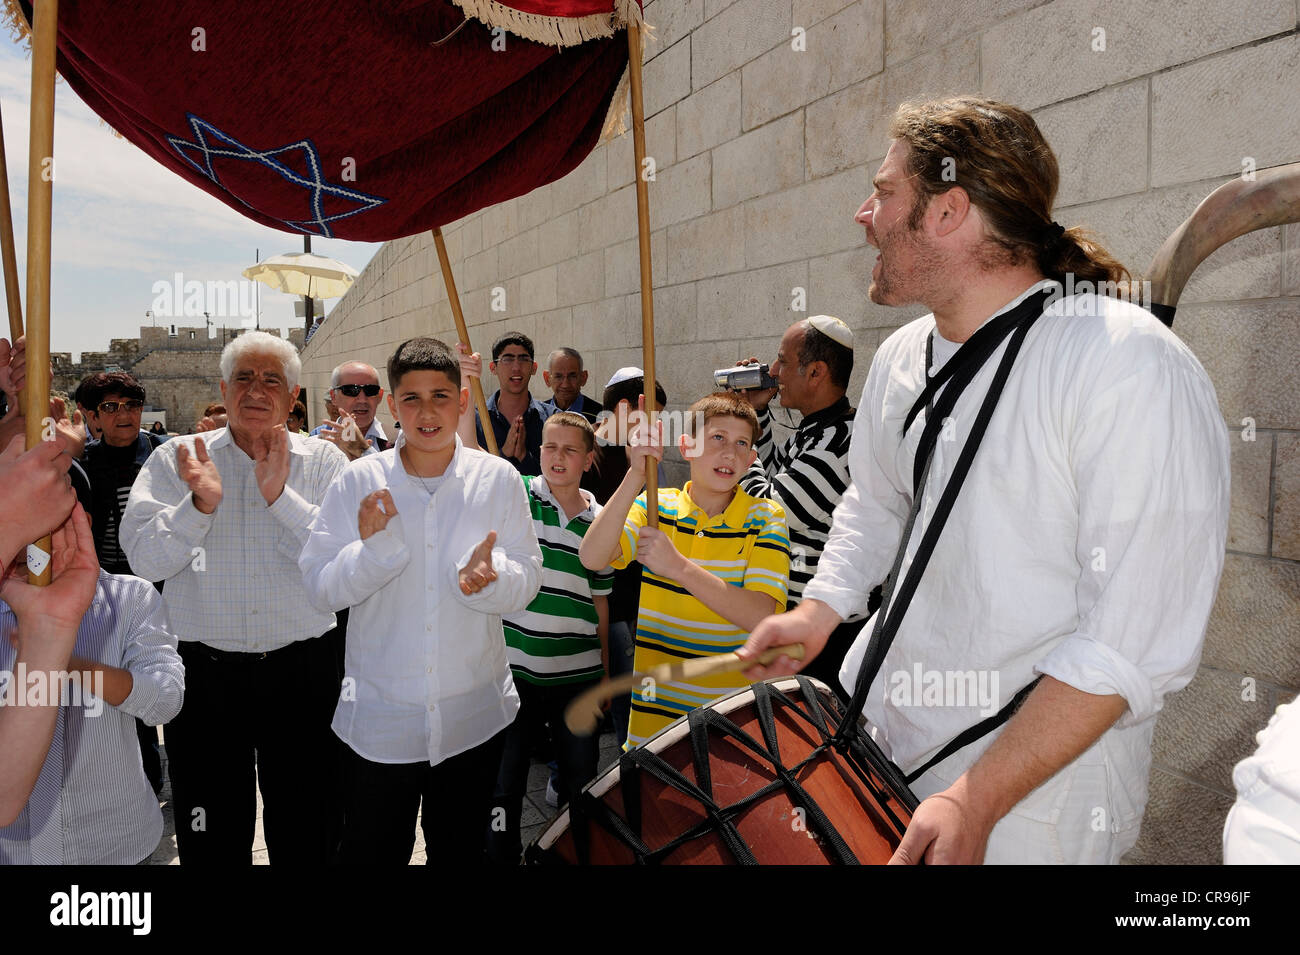 Bar Mitzvah celebration, boy, parents and guests are led to the Western or Wailing Wall to the sound of music, Muslim - Stock Image